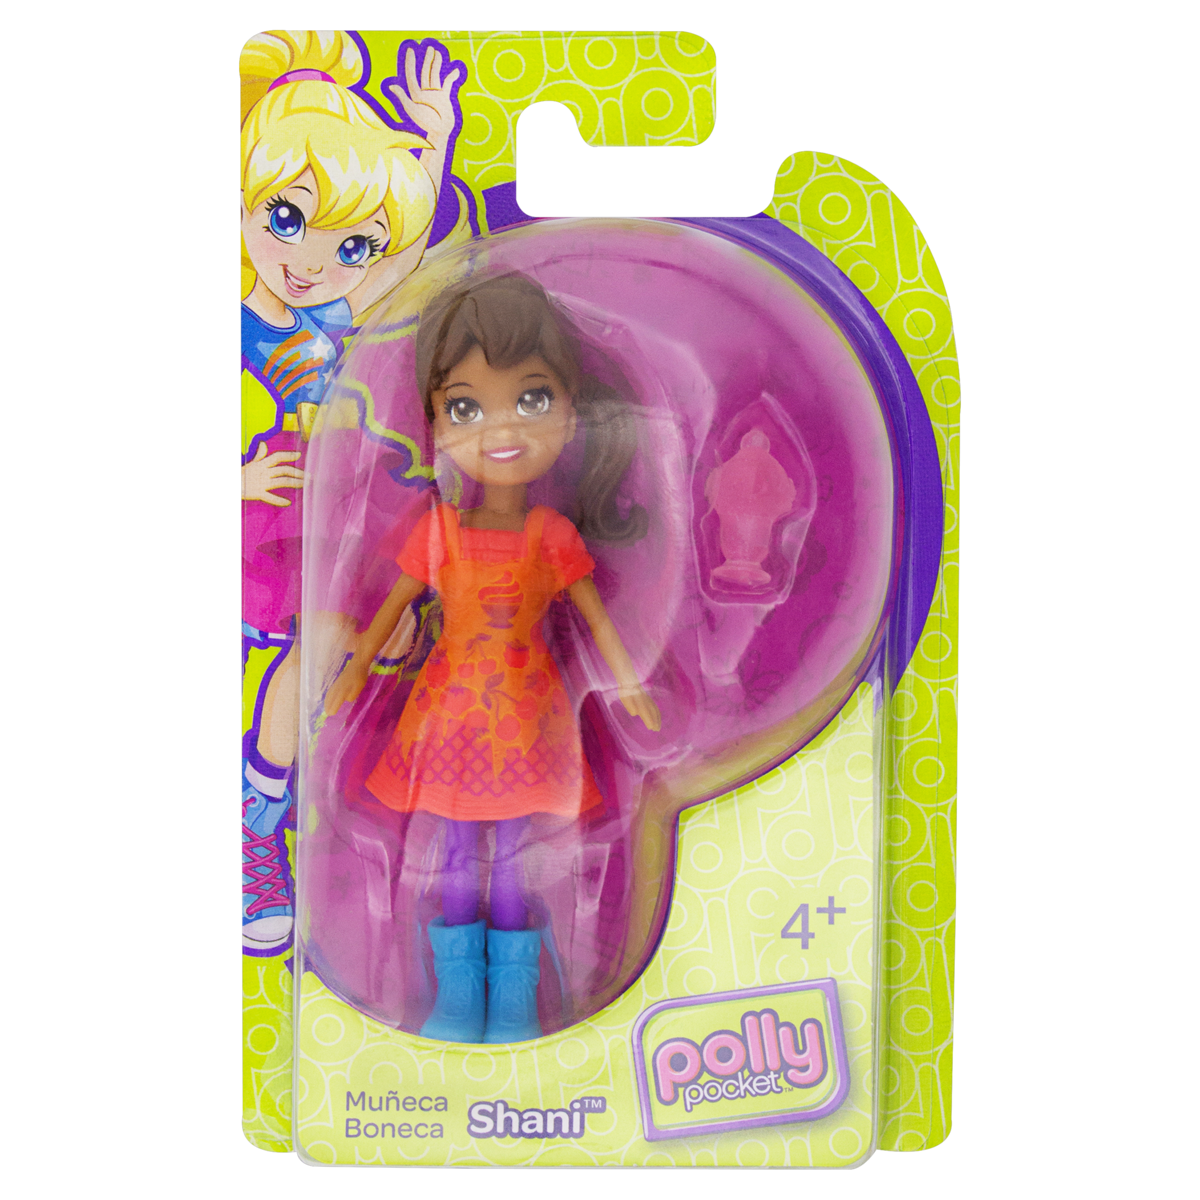 0027084440409 - BONECA SHANI POLLY POCKET